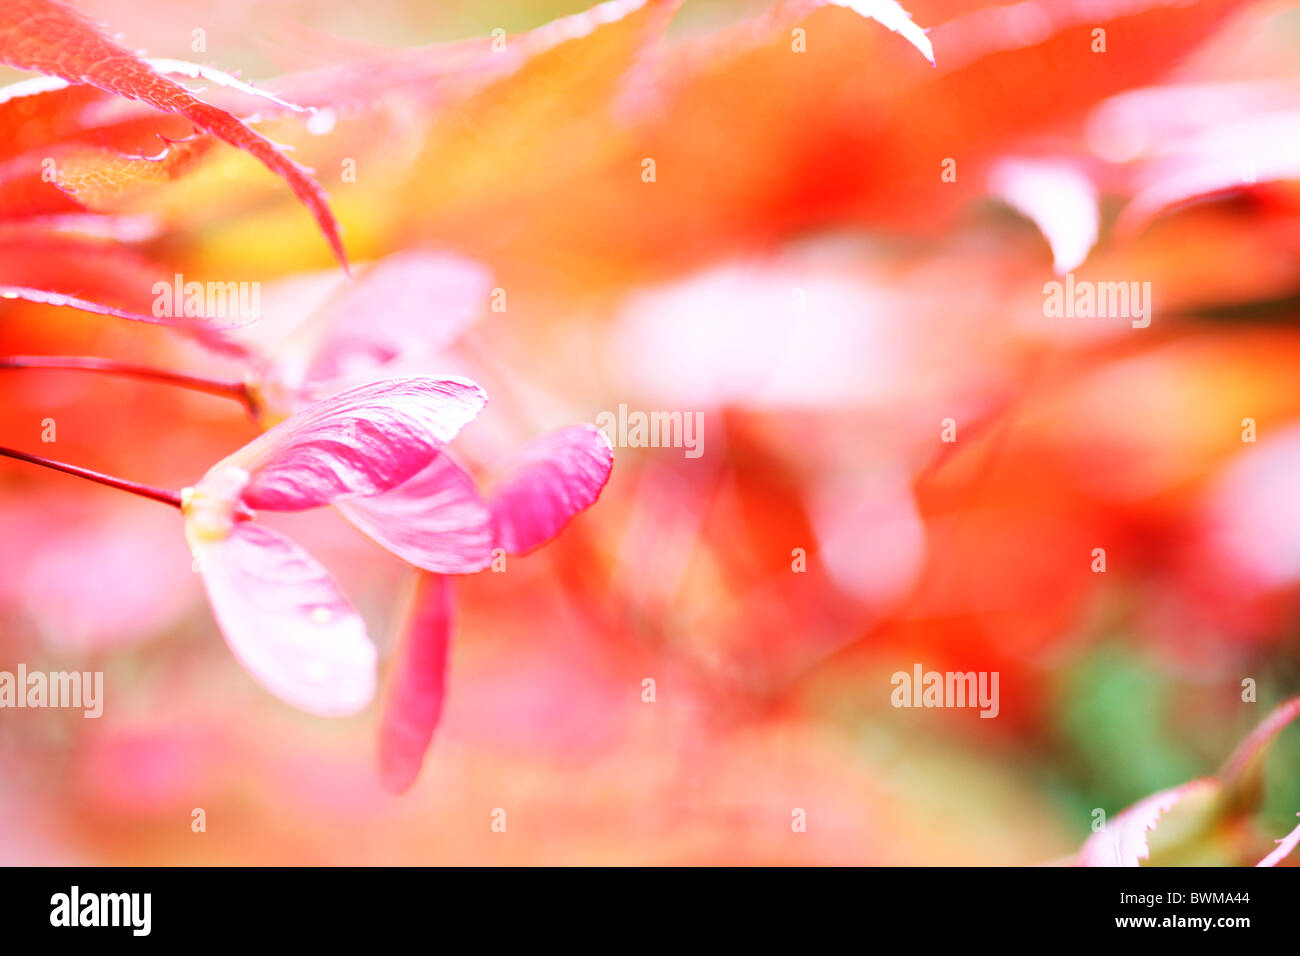 atmospheric and dreamy red maple tree with winged samaras Jane-Ann Butler Photography JABP914 Stock Photo